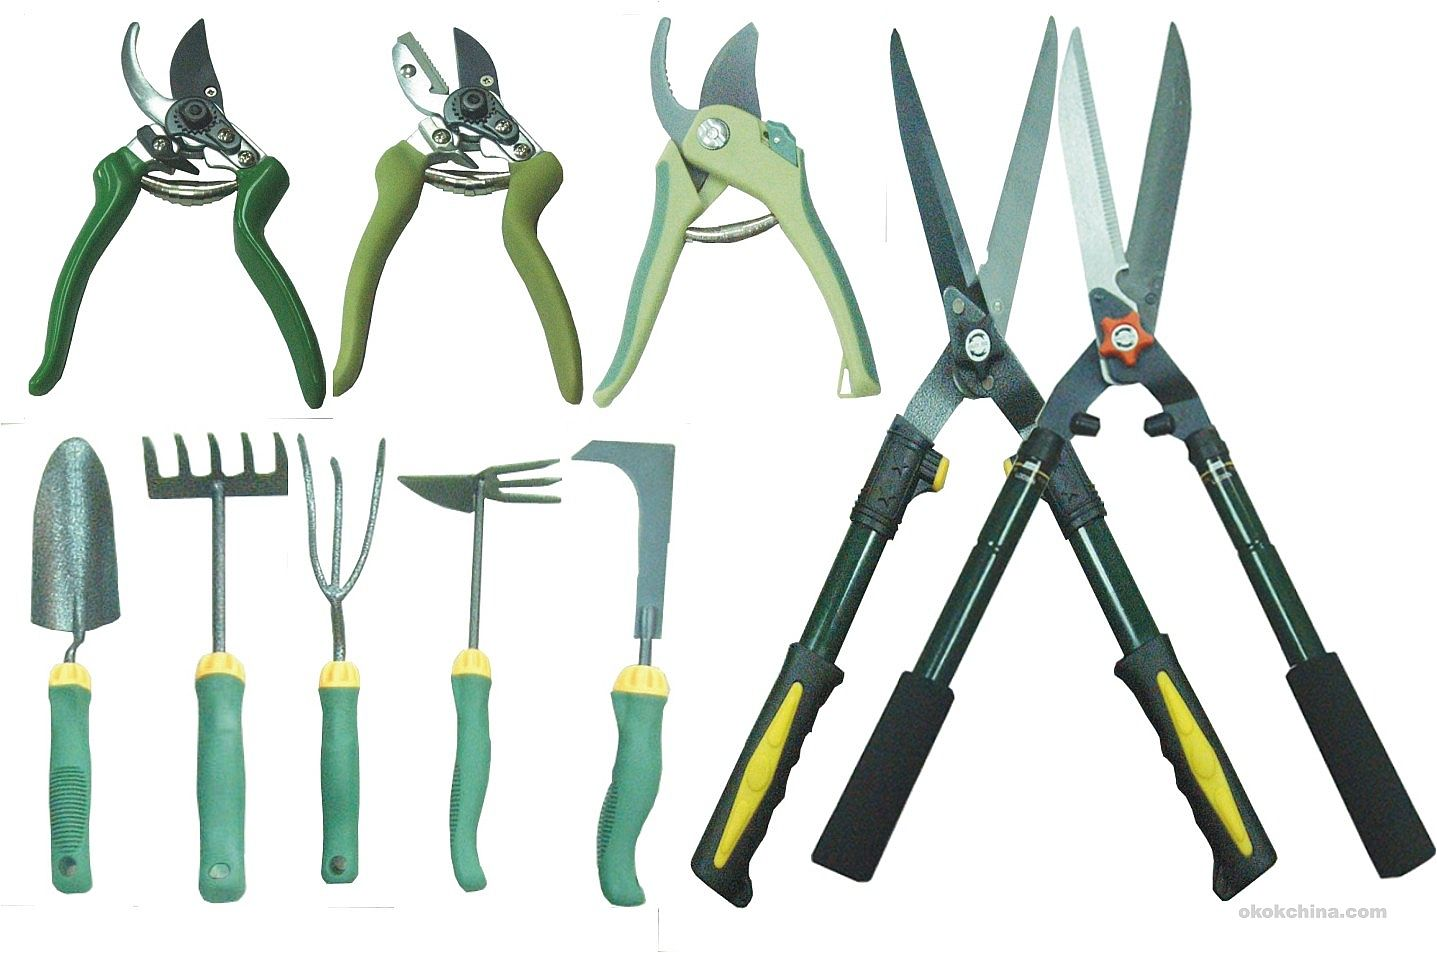 Gardening tools basic gardening tools of the beginner for Gardening tools list with pictures